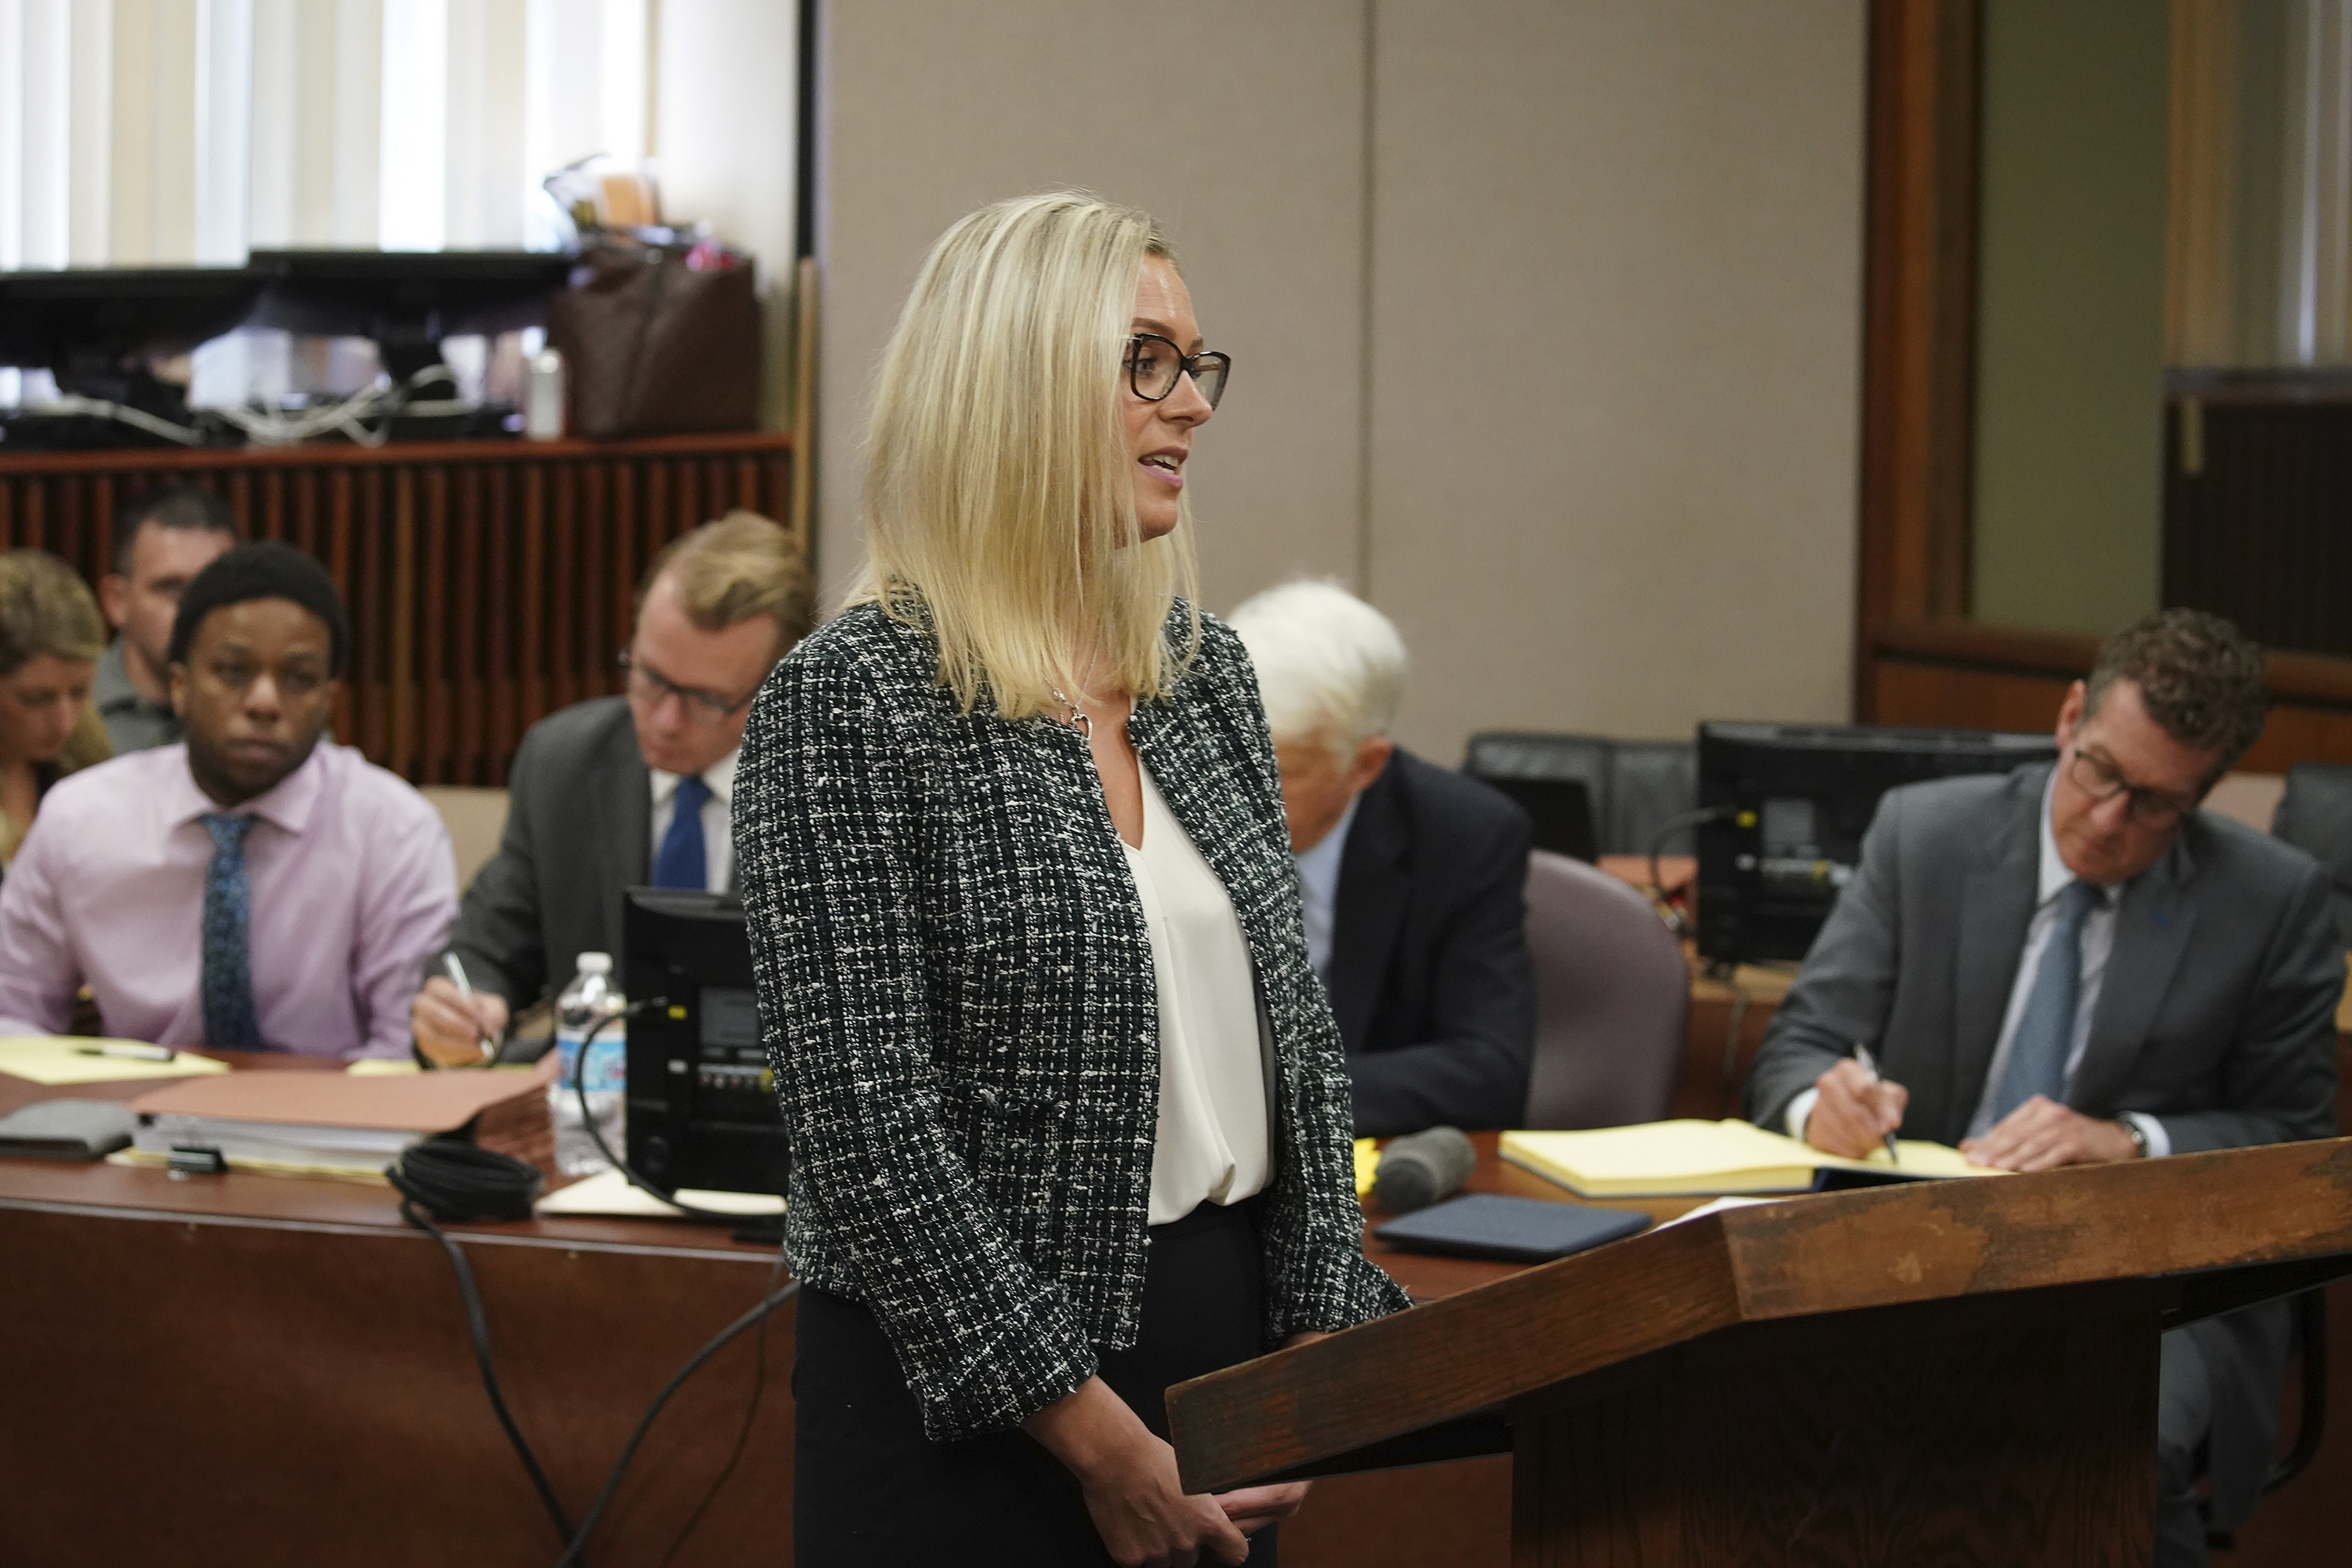 Assistant State's Attorney Margaret Hillmann makes opening statements in the trial of Corey Morgan for the murder of 9-year-old Tyshawn Lee at the Leighton Criminal Court building in Chicago on Tuesday, Sept. 17, 2019.